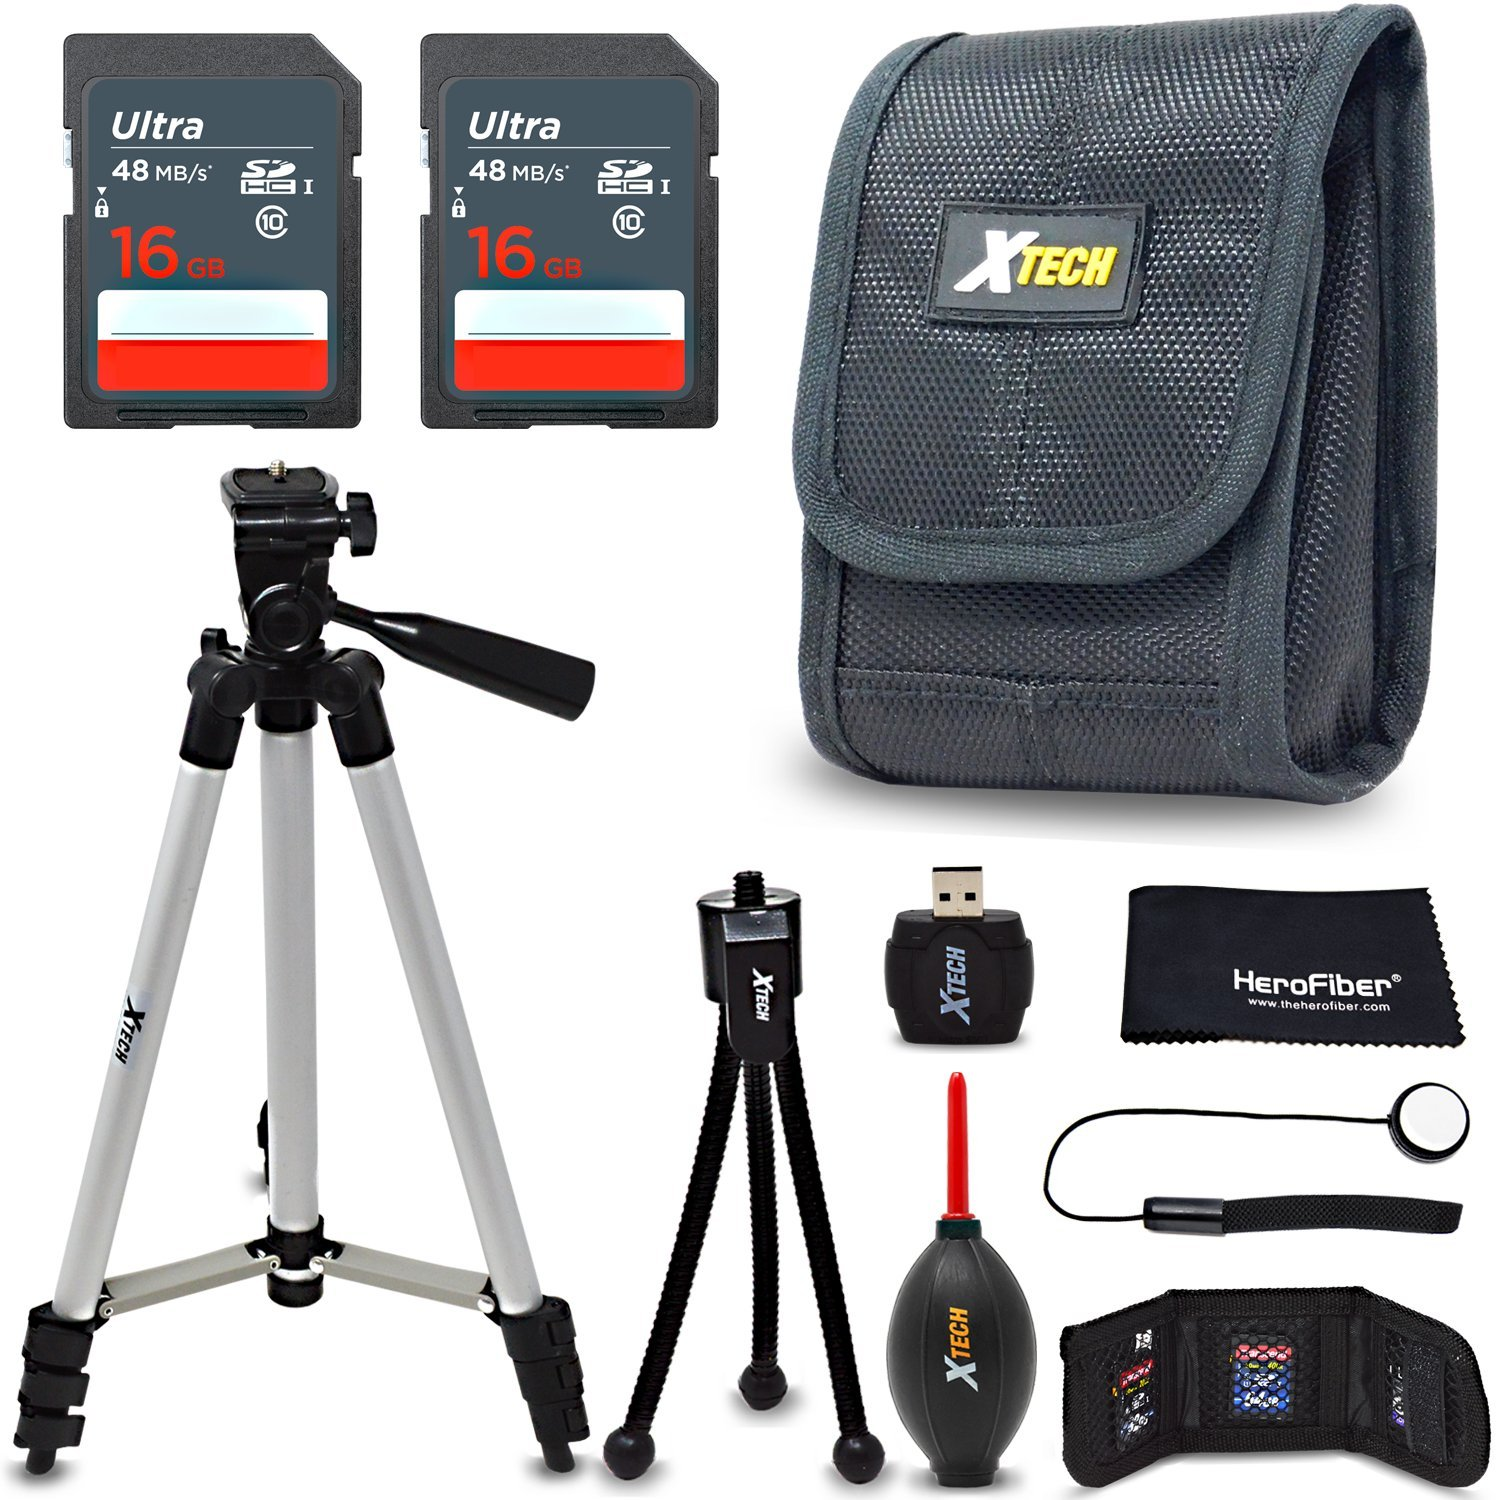 Xtech 32GB Accessories Bundle Kit for Canon Powershot SX730 HS, SX620 HS, SX720 HS, SX710 HS, SX610 HS Includes 32GB memory Card, Camera Case, 50 inch Tripod, Memory Card holder + MORE